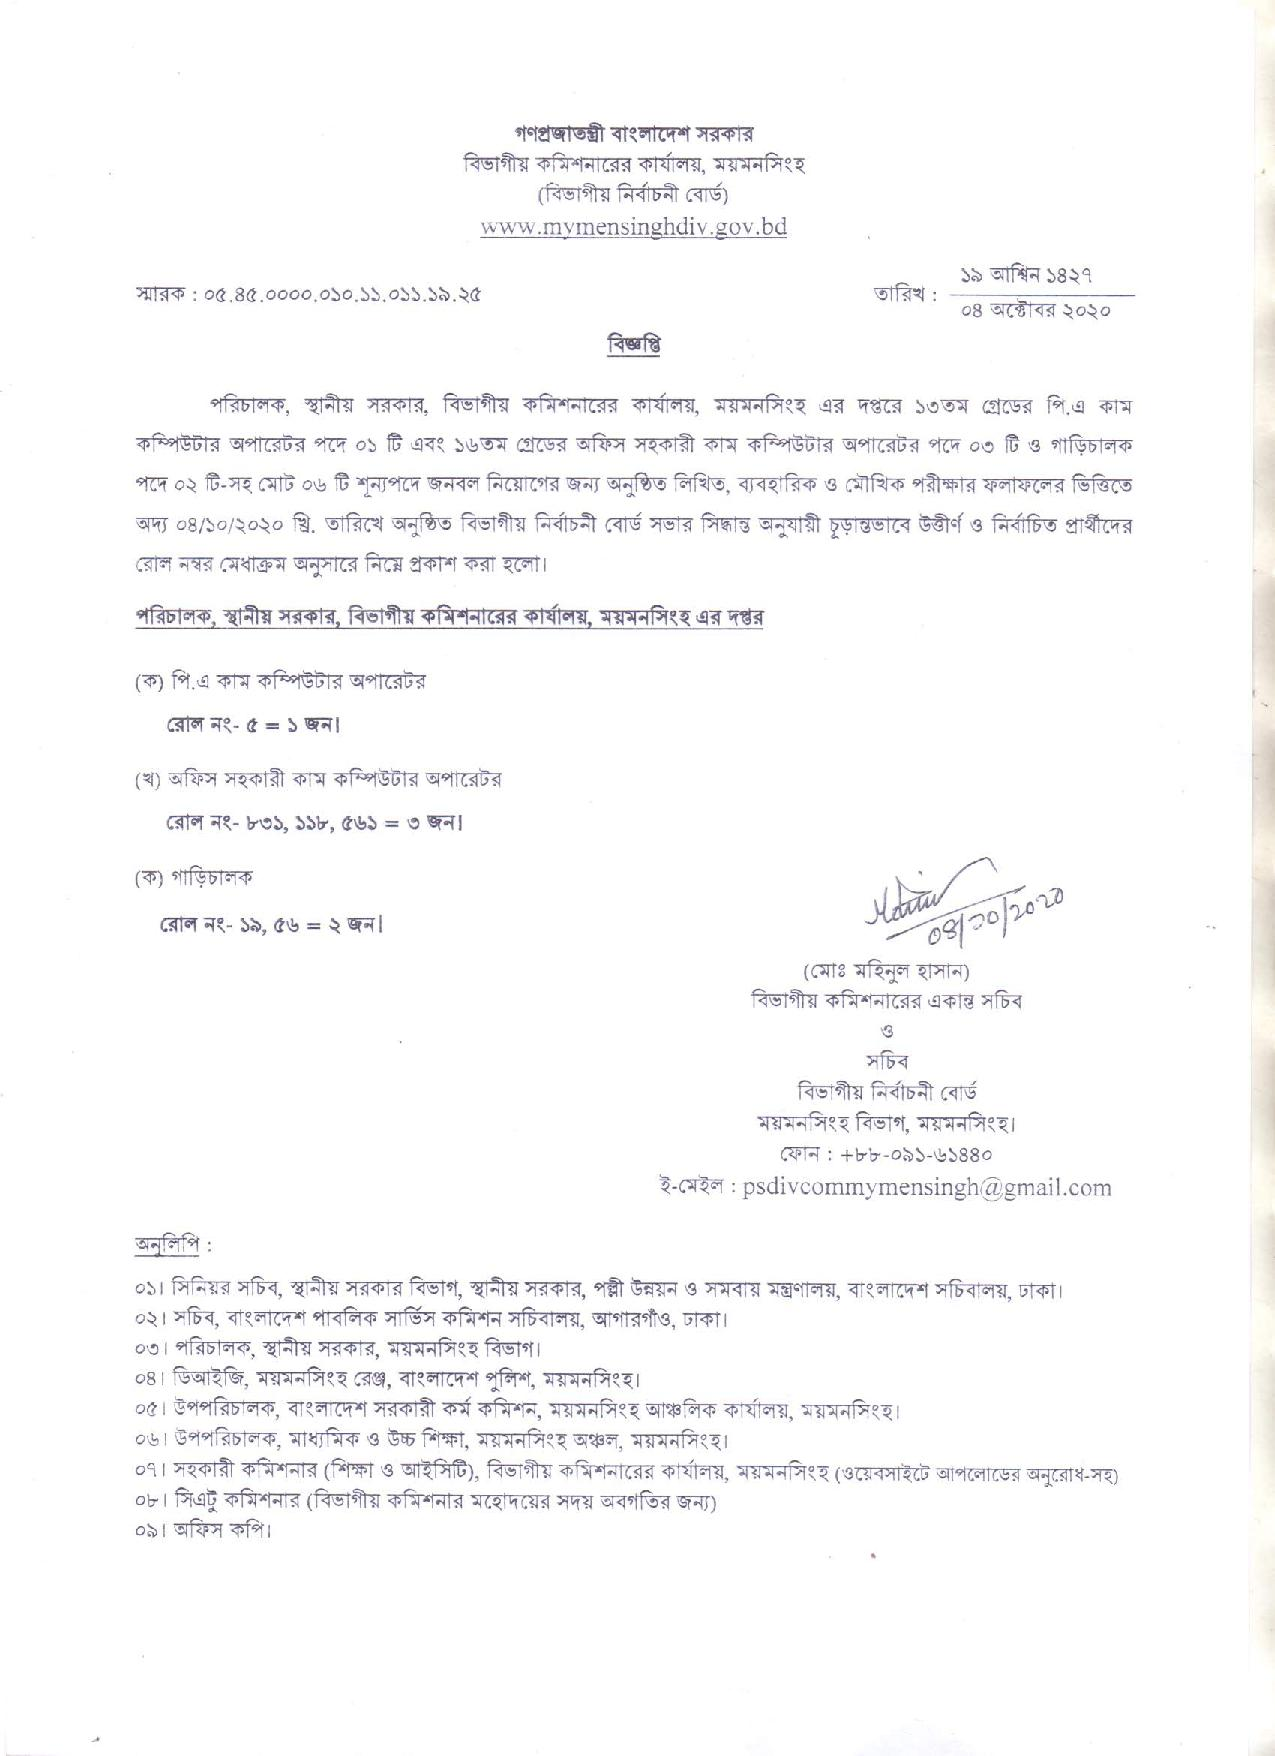 Divisional Commissioner Office Mymensingh Exam final Result 2020